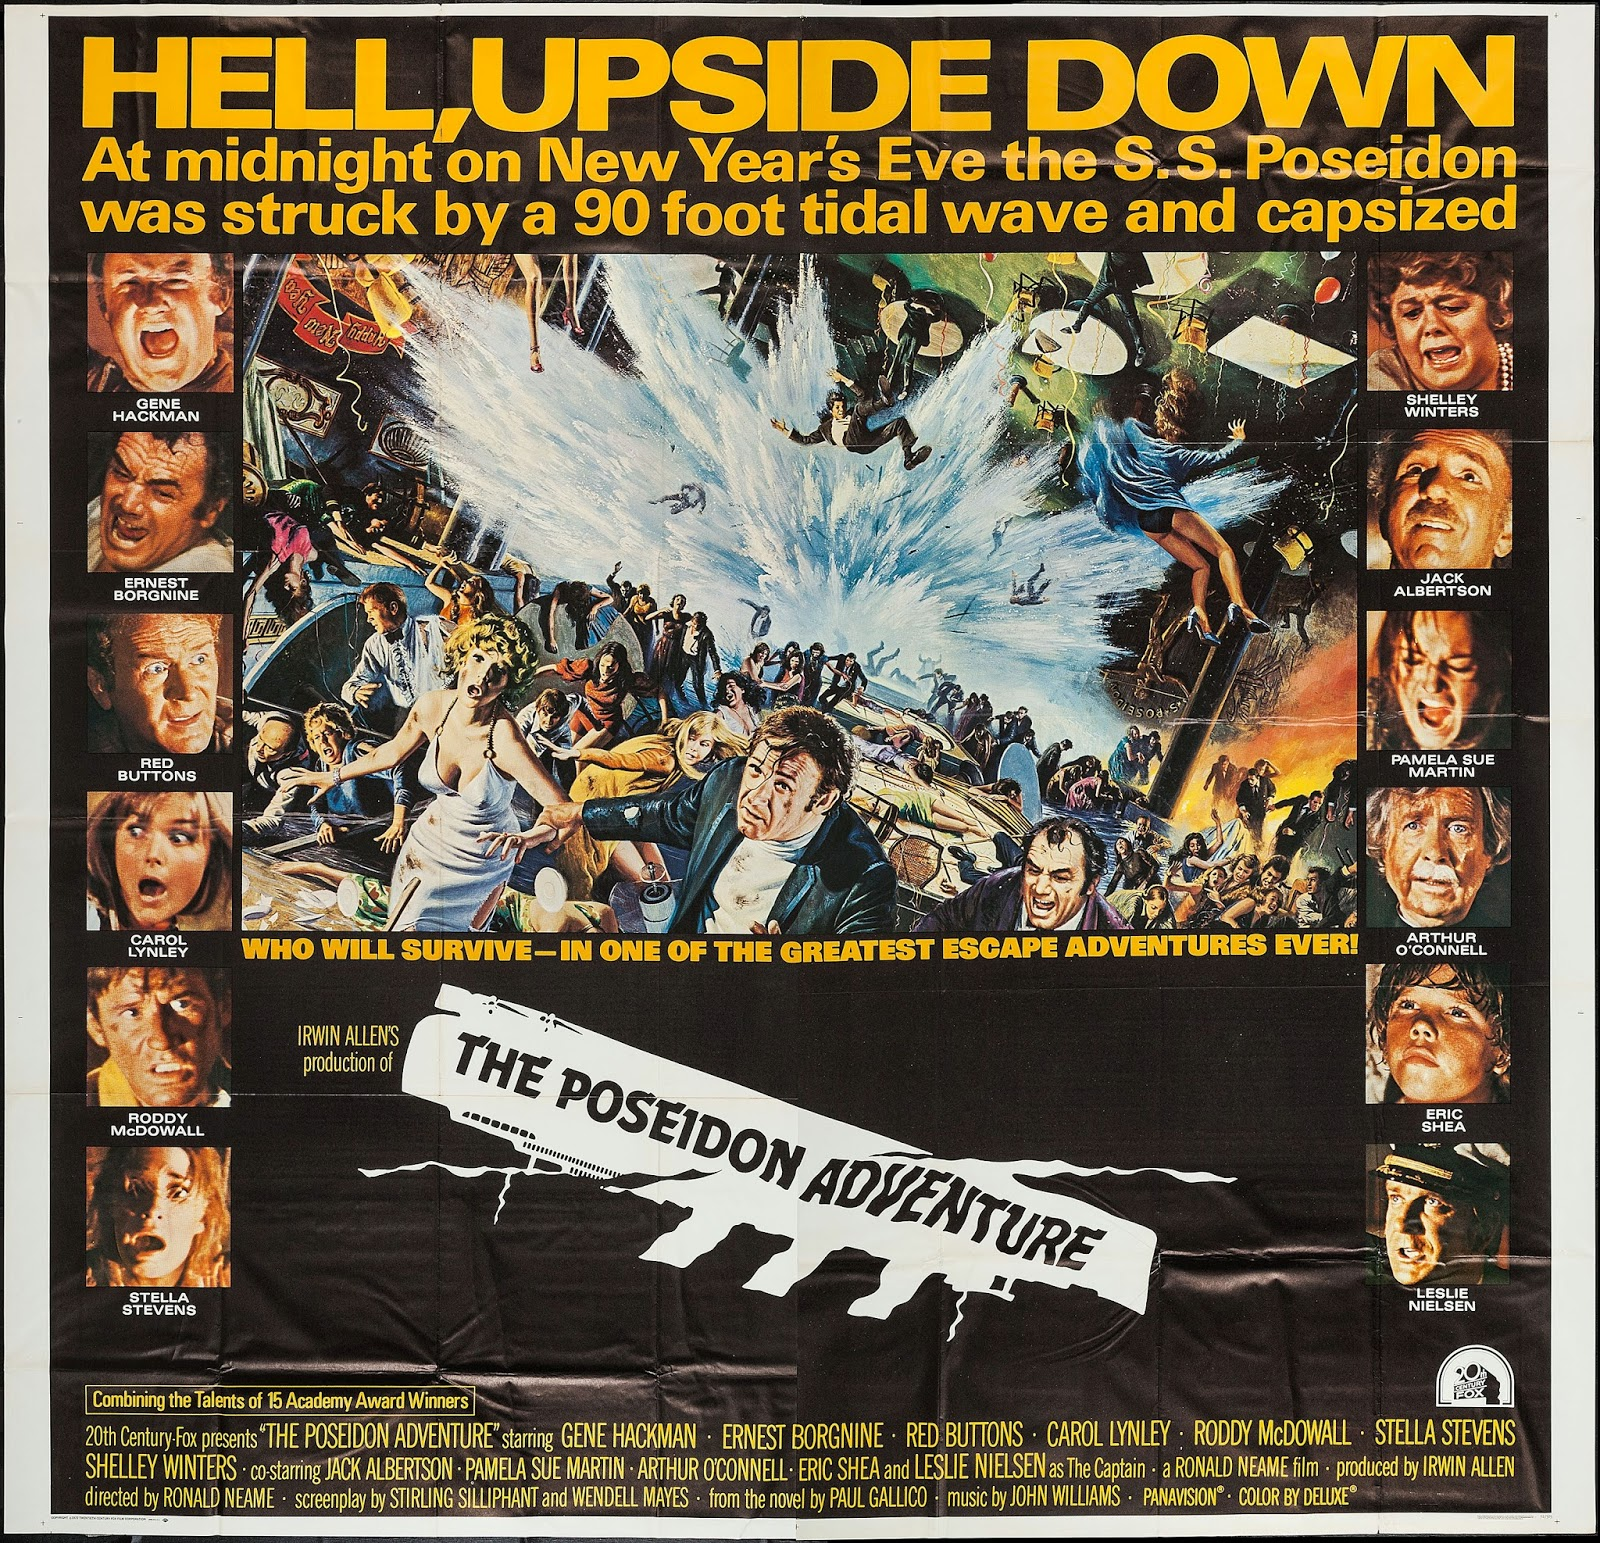 #BMovieManiacs New Year's Eve Event: The Poseidon Adventure (1972)